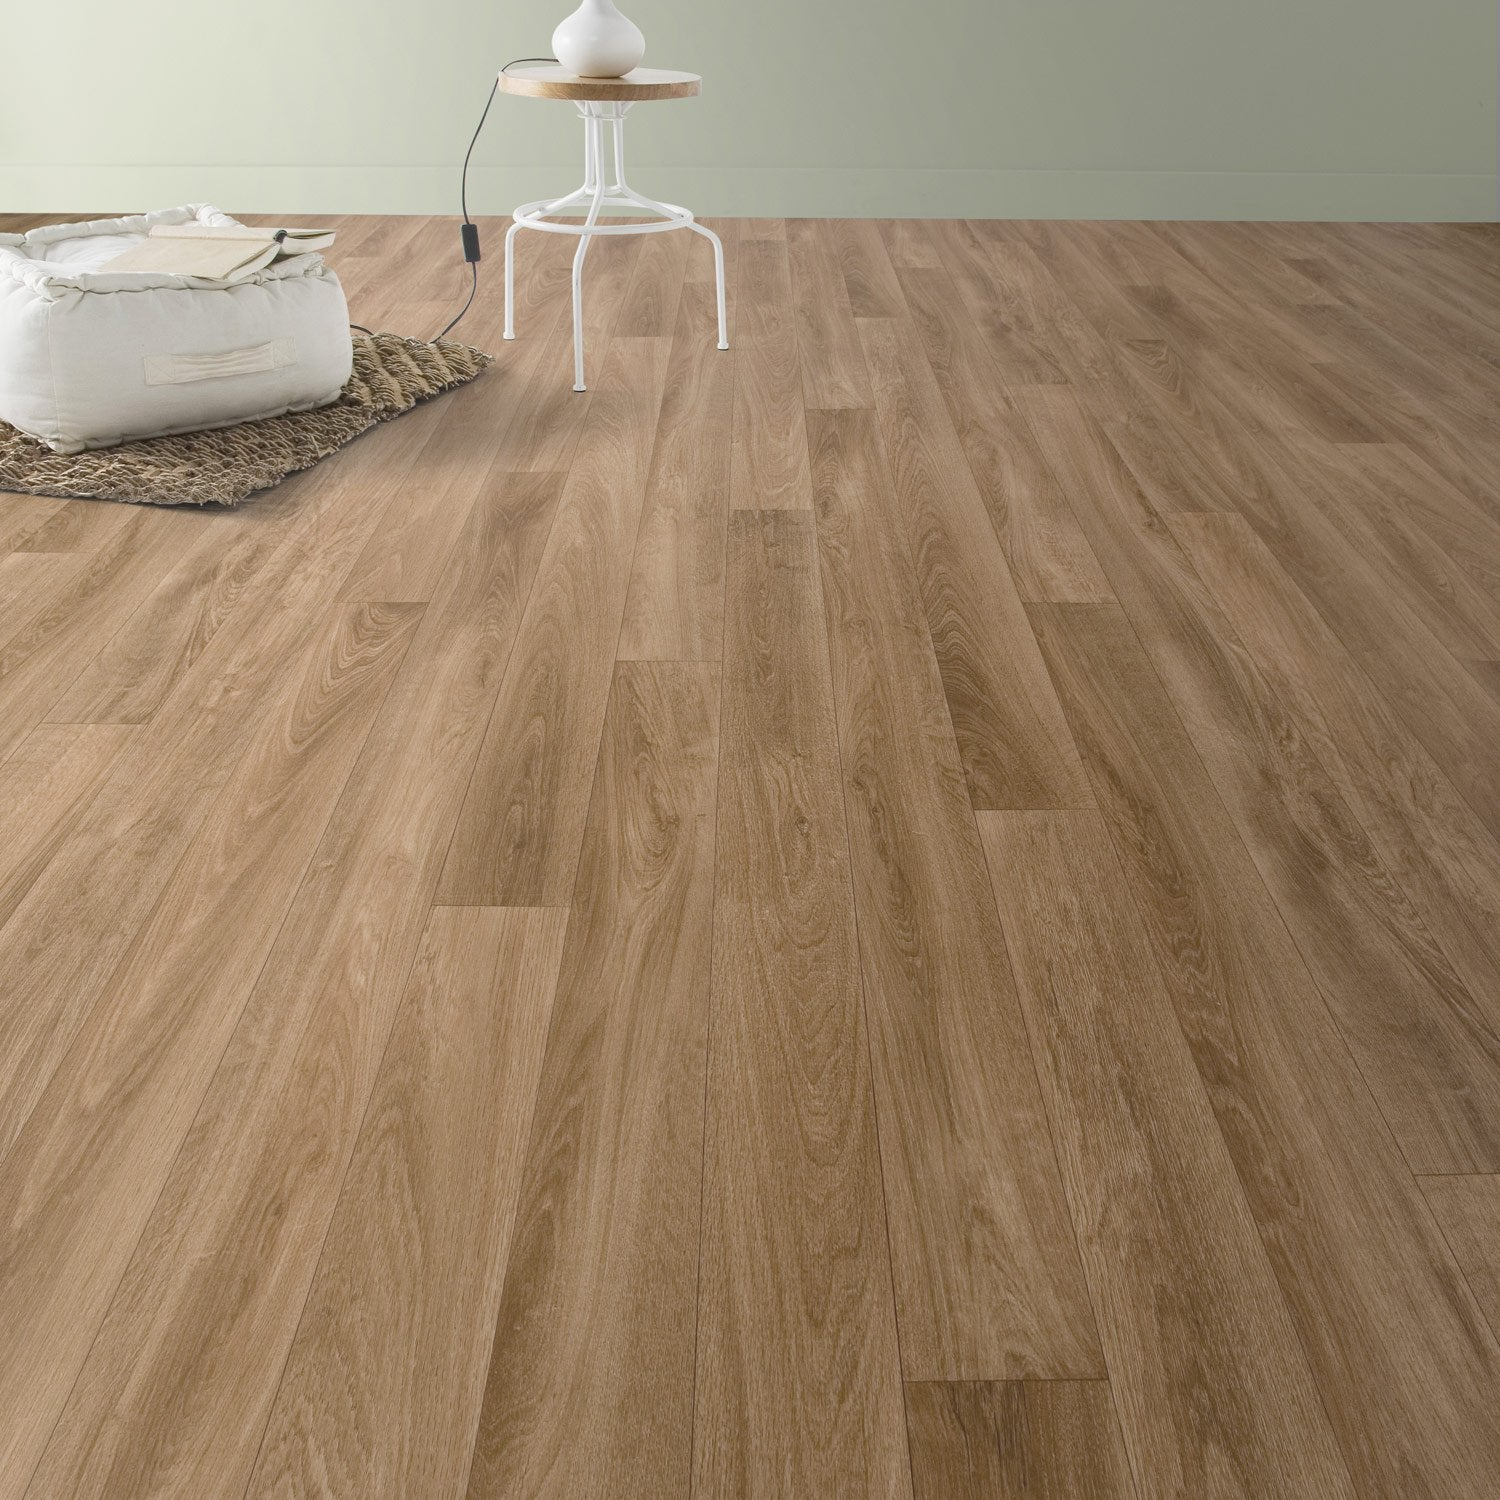 Sol pvc nature oak aerotex l 4 m leroy merlin for Montaggio finestre pvc leroy merlin